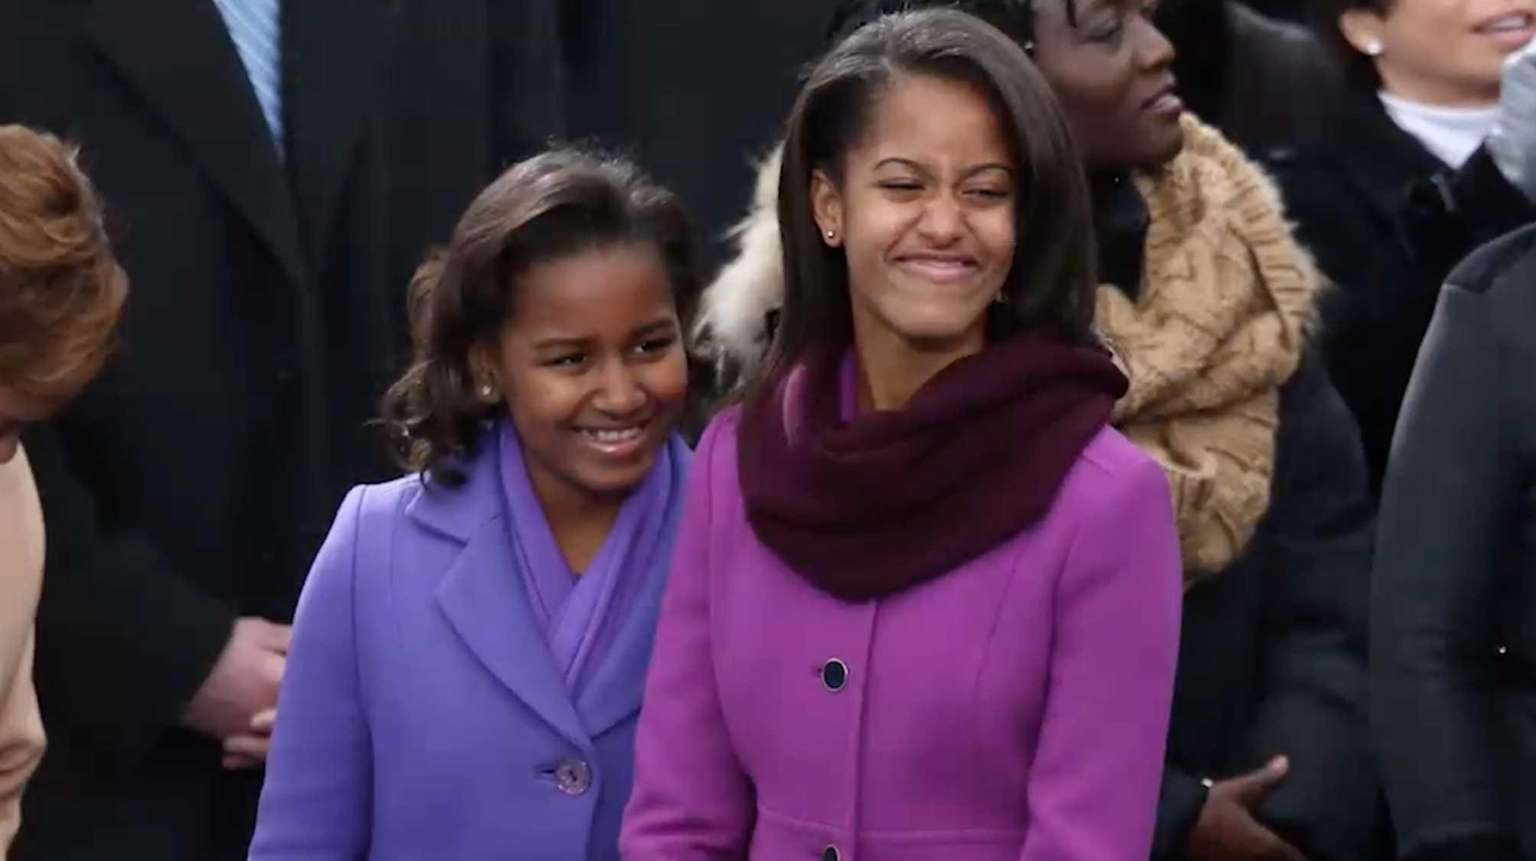 Malia and Sasha through the years